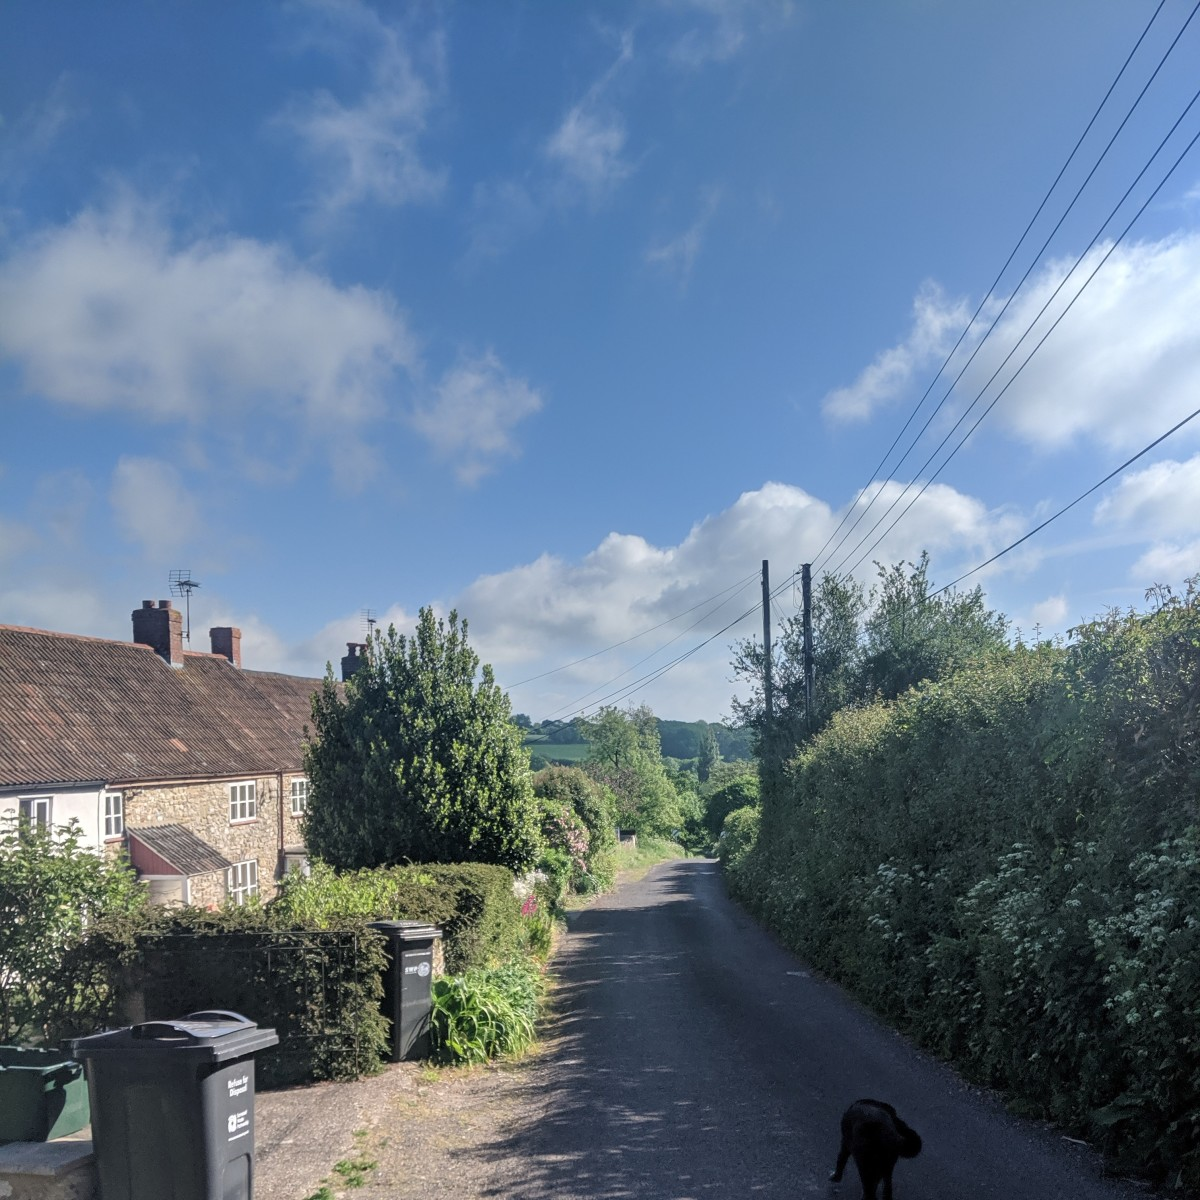 English country lane, with friendly dog.